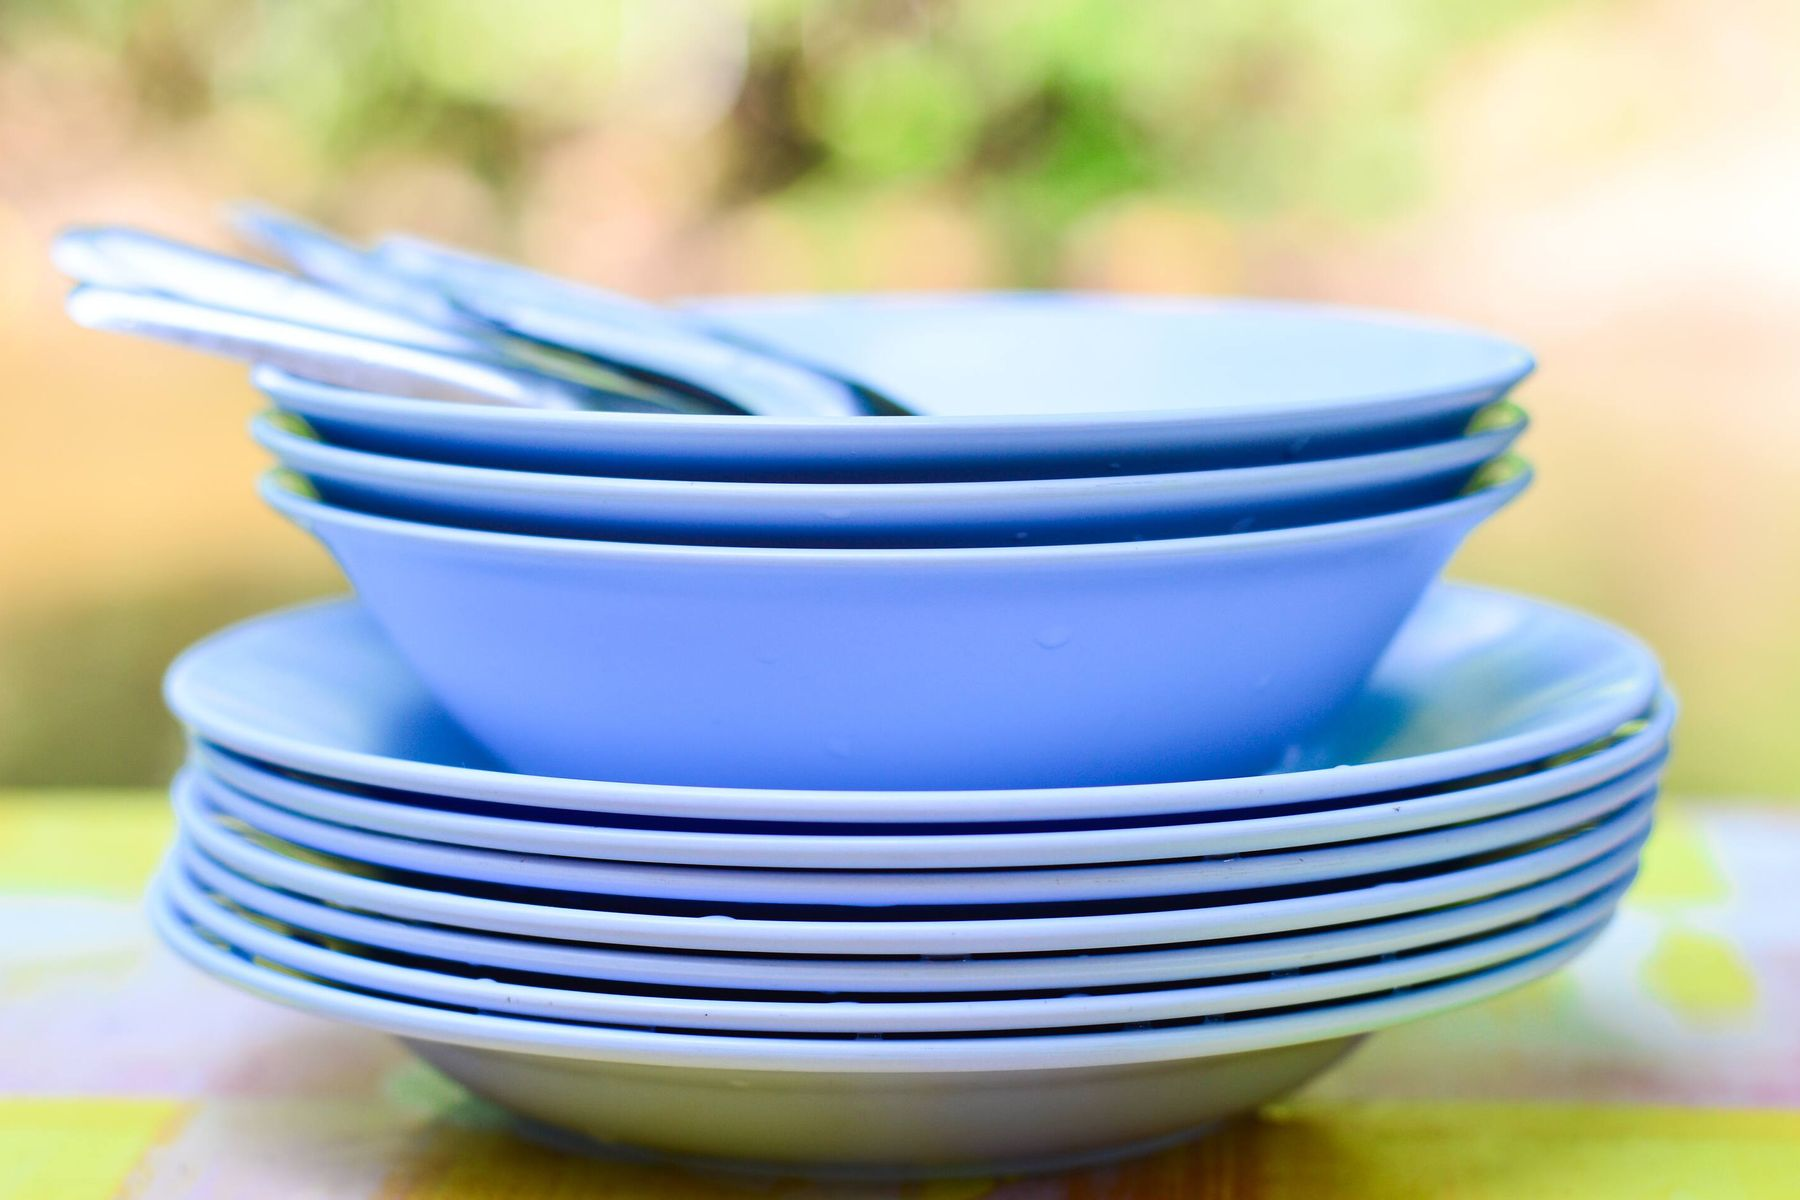 How to Care for Melamine Crockery | Cleanipedia